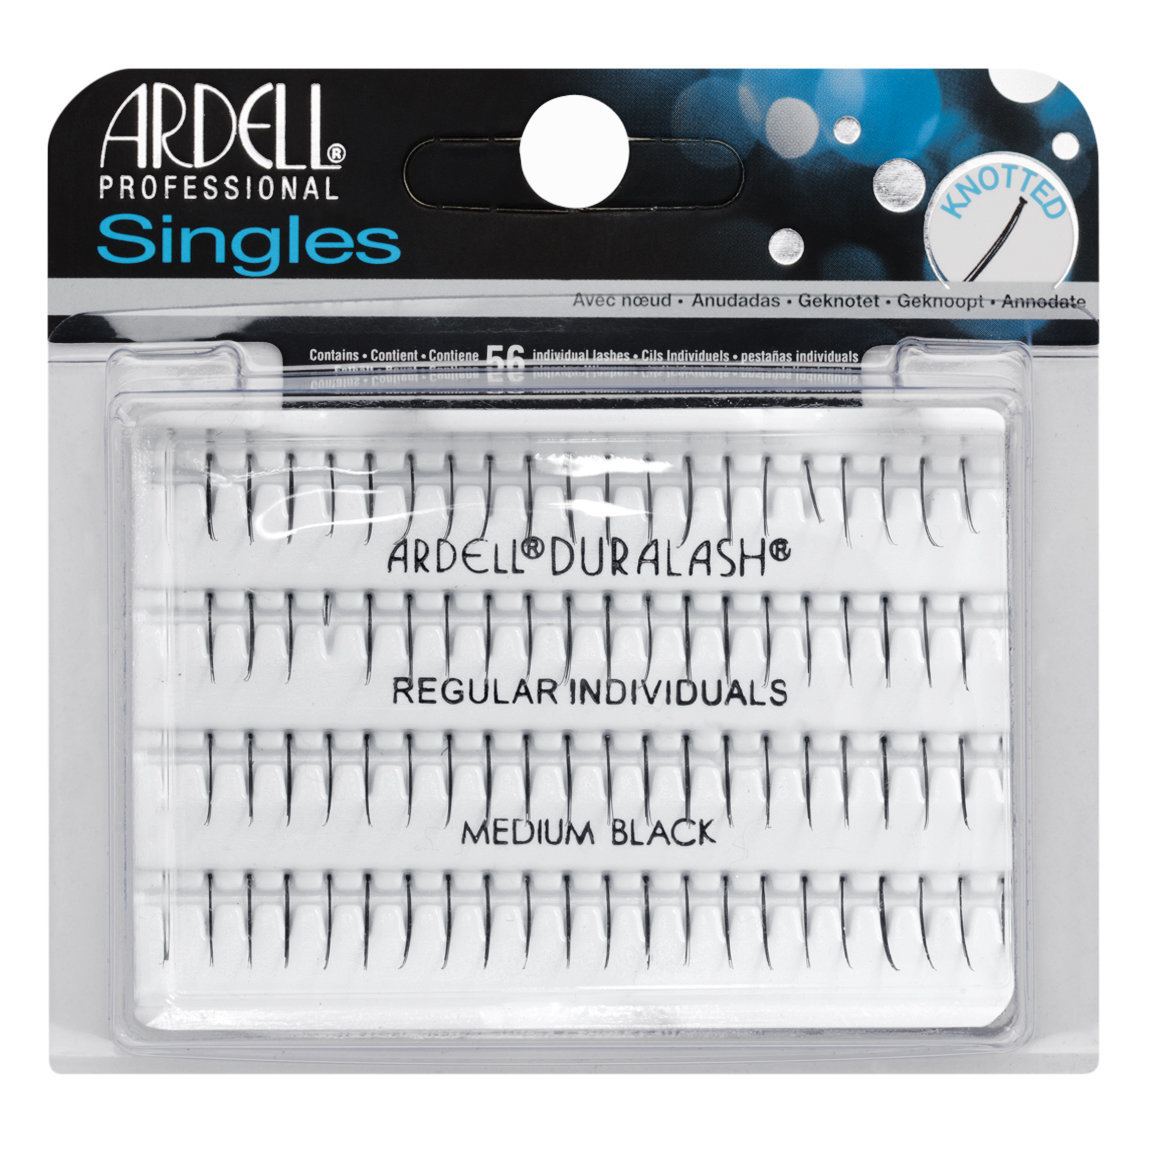 Ardell Individuals Single Knotted  Regular Medium Black alternative view 1.